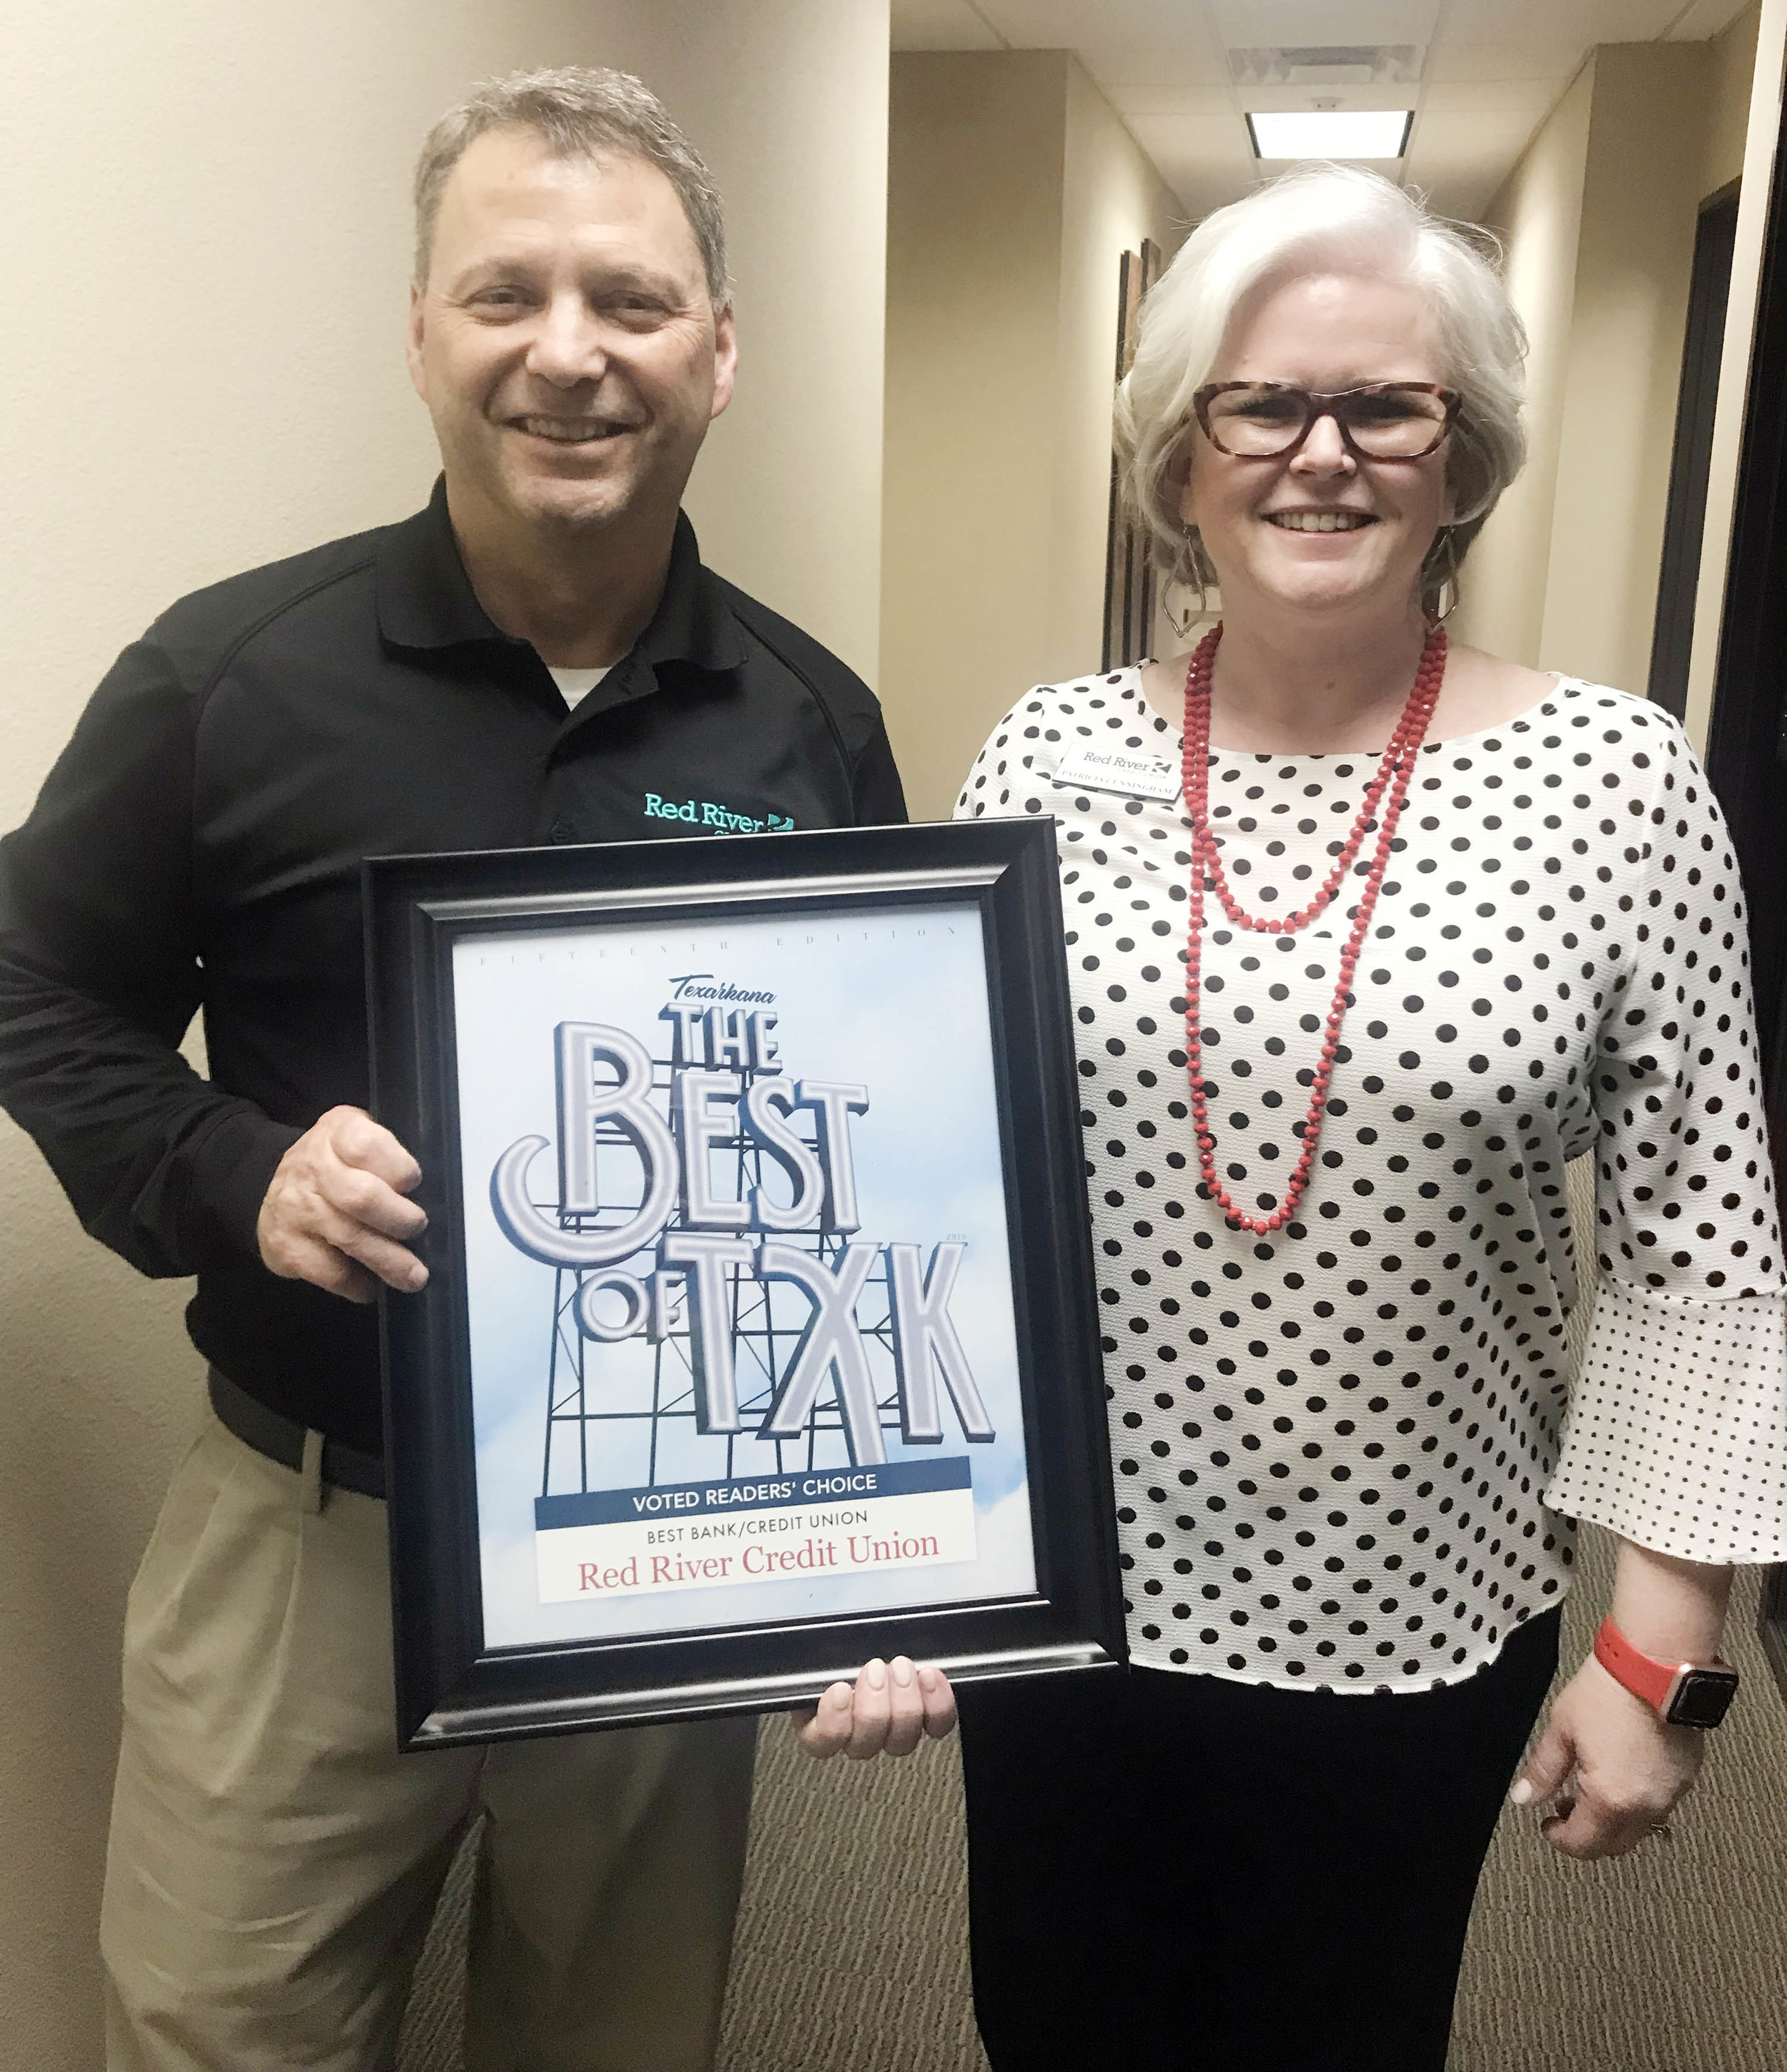 RED RIVER CREDIT UNION – Brad Bailey and Patricia Cunningham